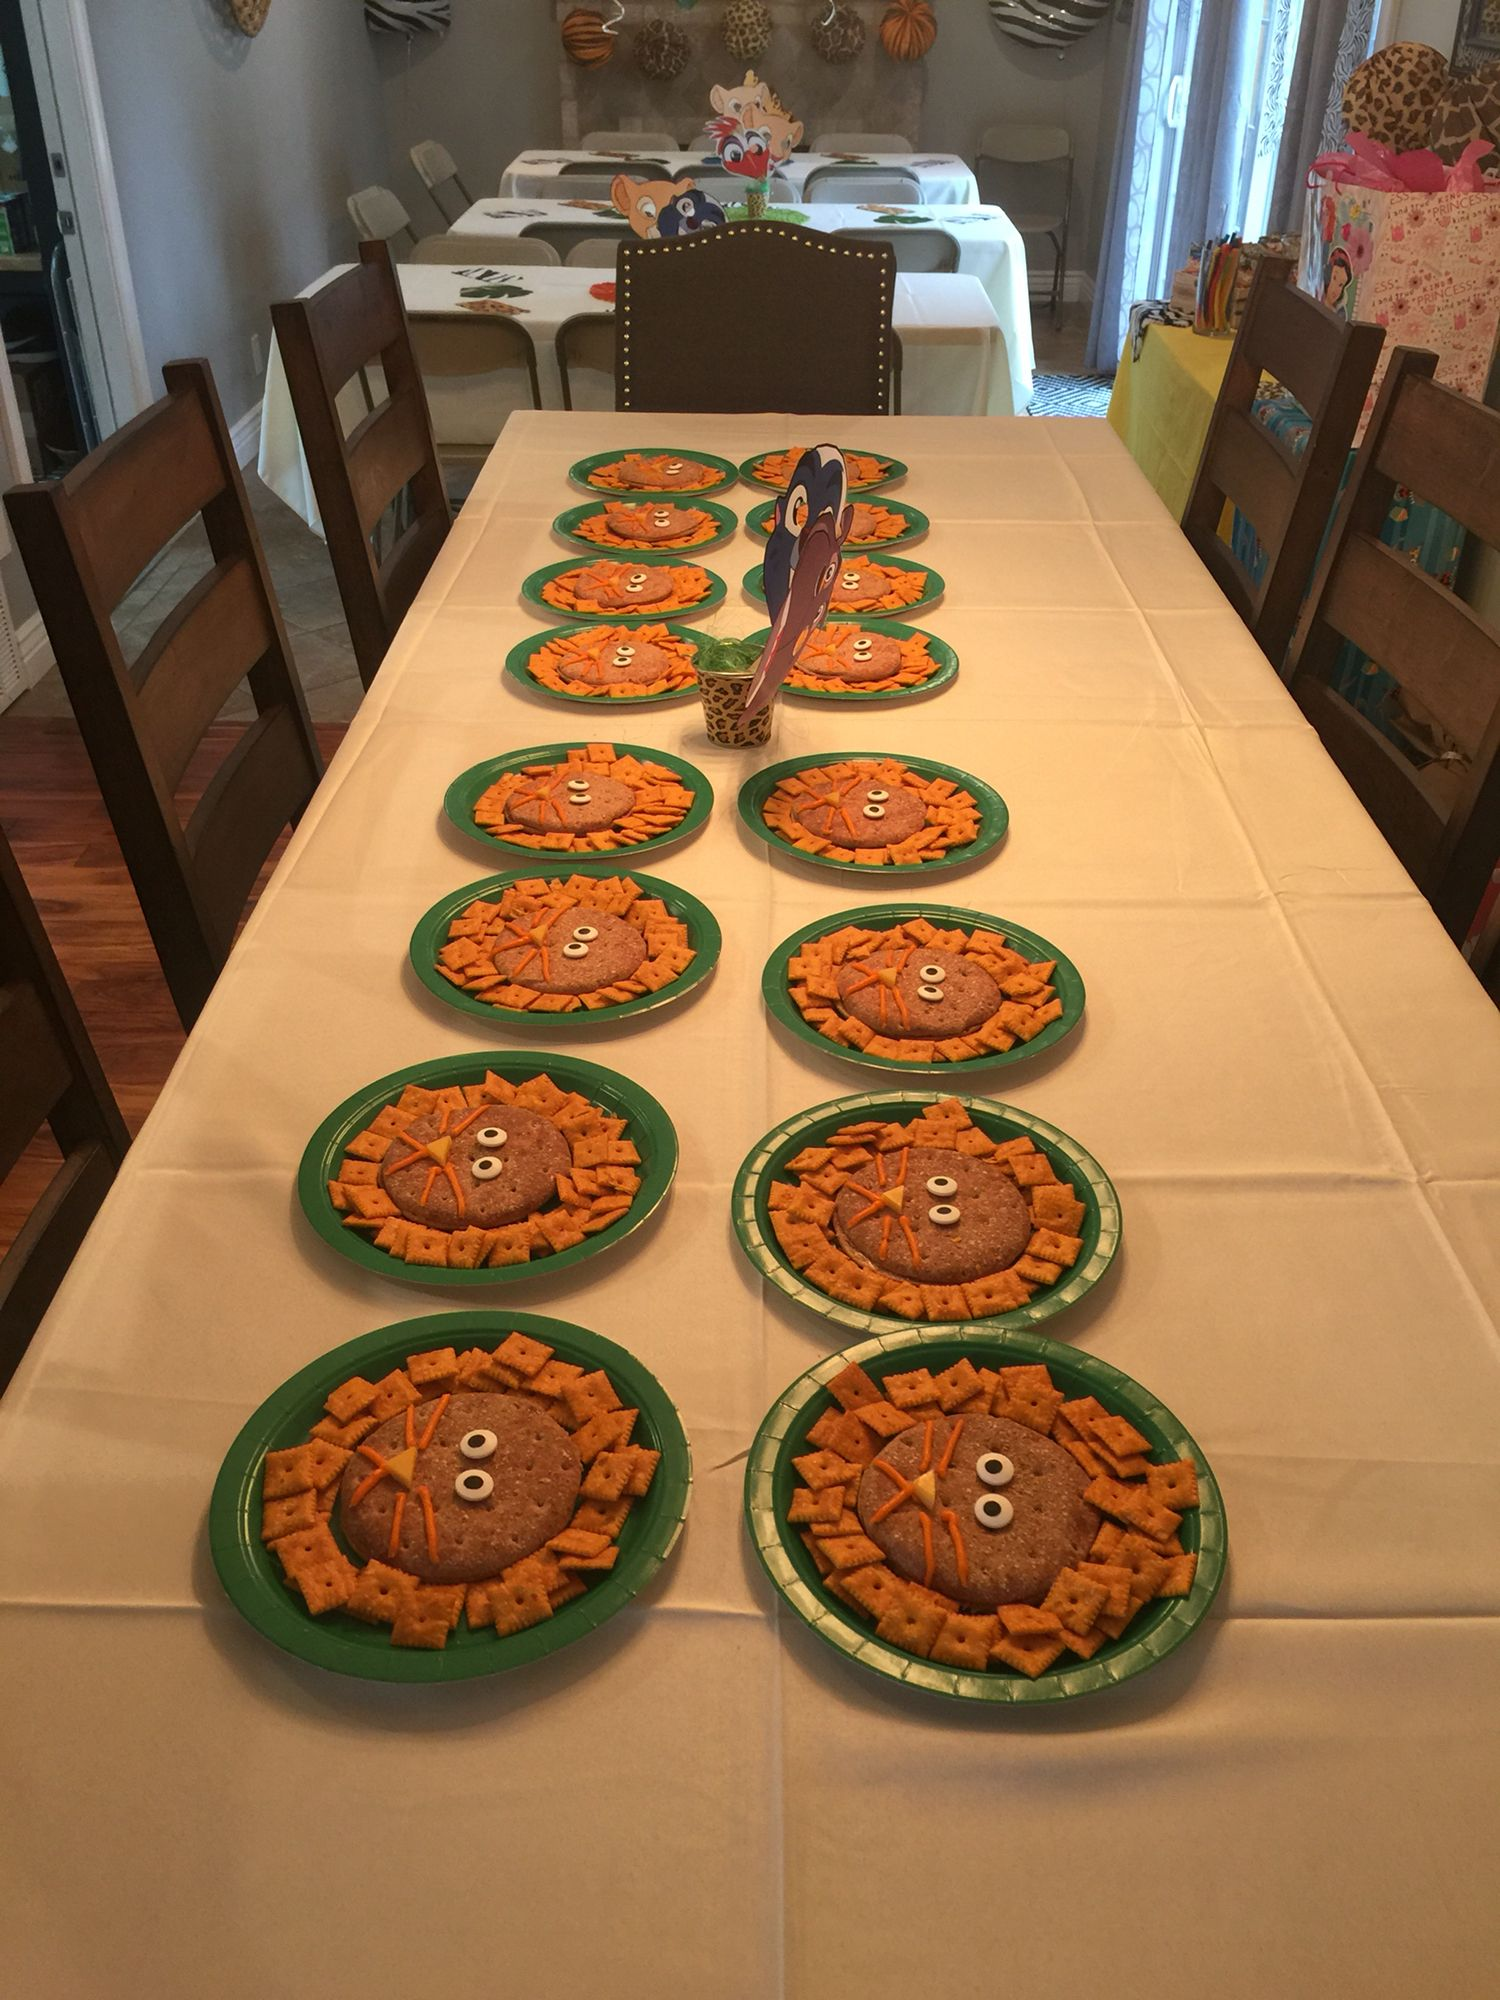 This was so cute and all edible decorated kids plates! These are Lion Guard P&J sandwiches very healthy and Cheez its.